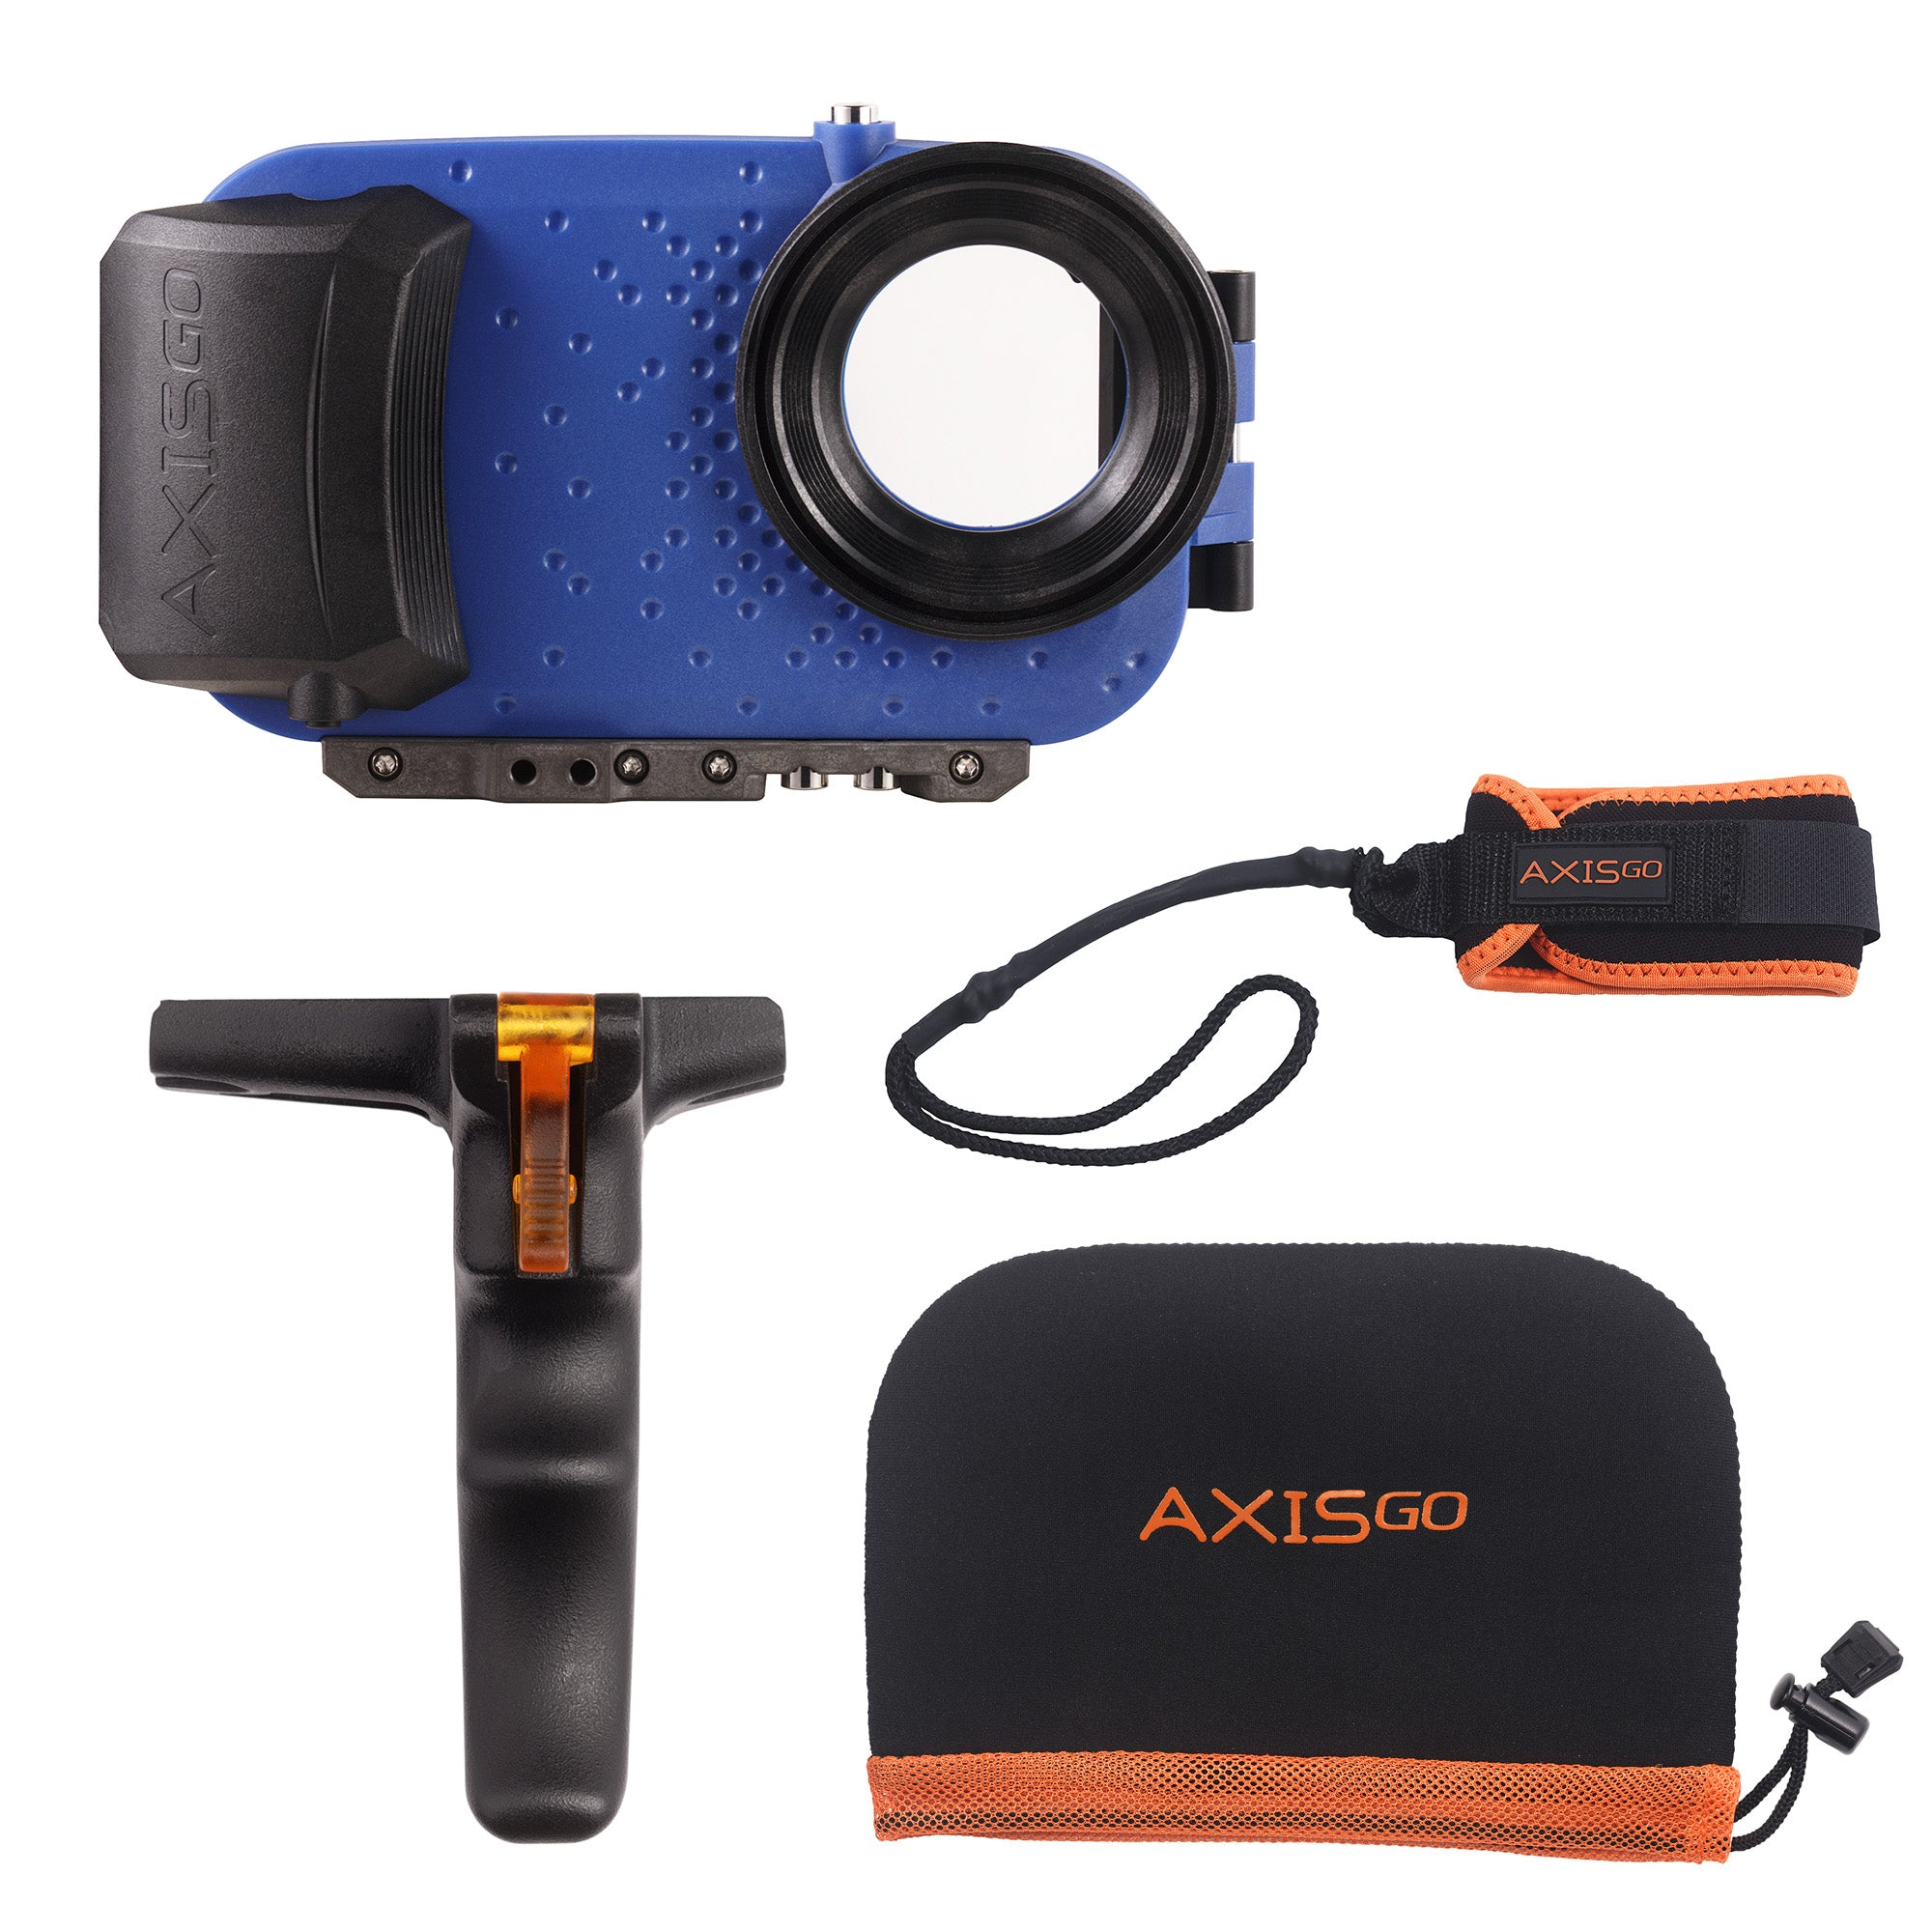 AxisGO 11 Pro Action Kit